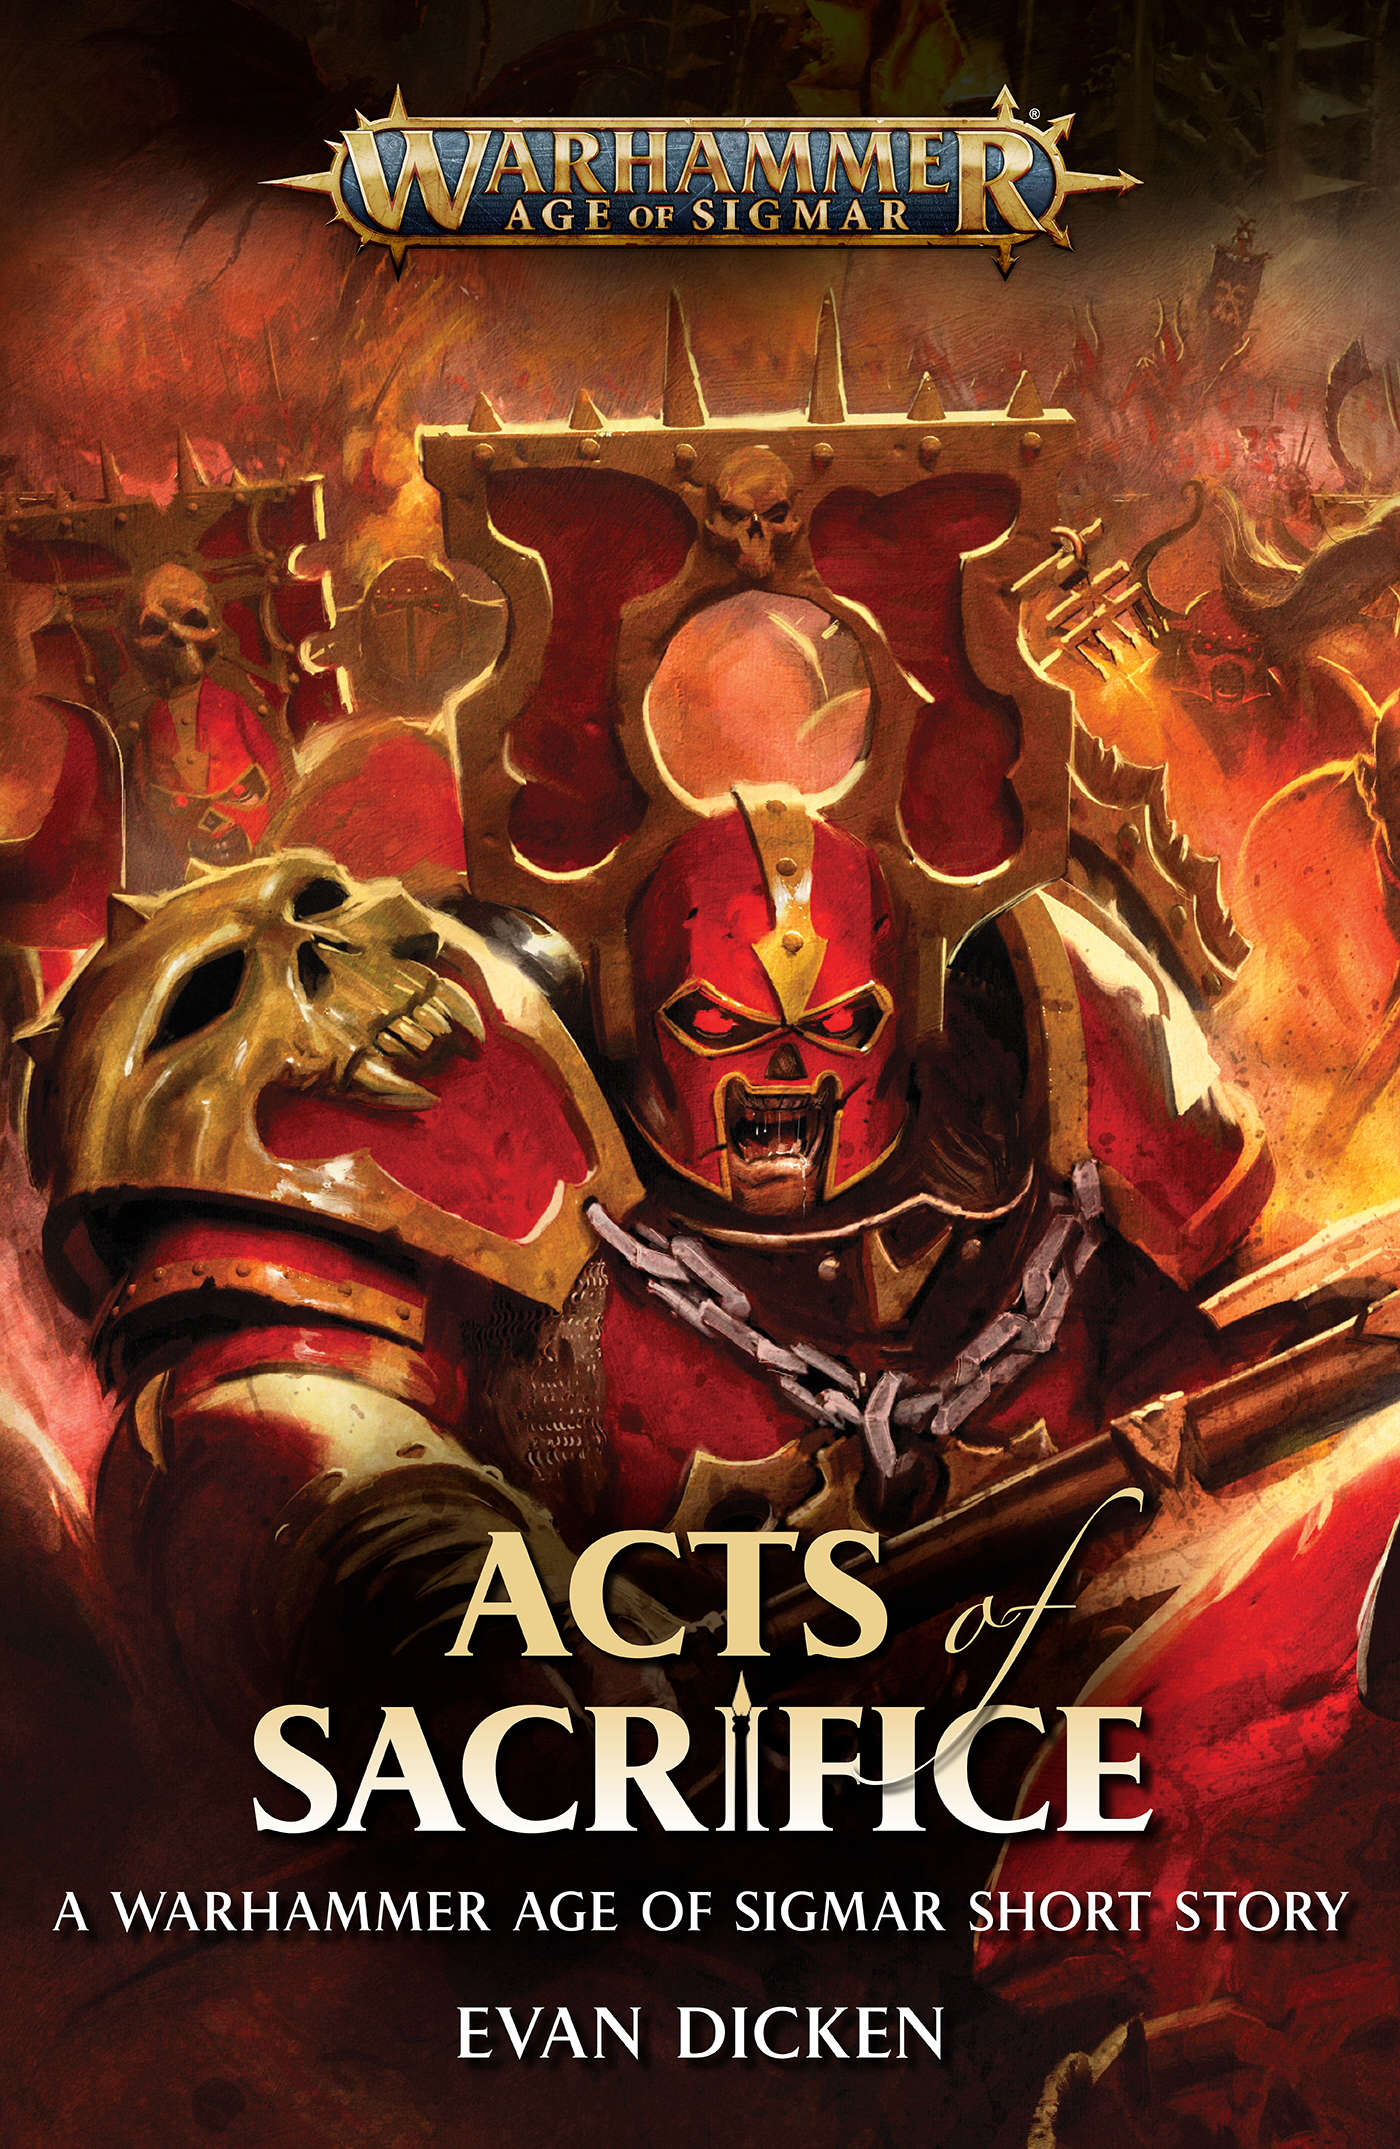 Acts of Sacrifice by Evan Dicken